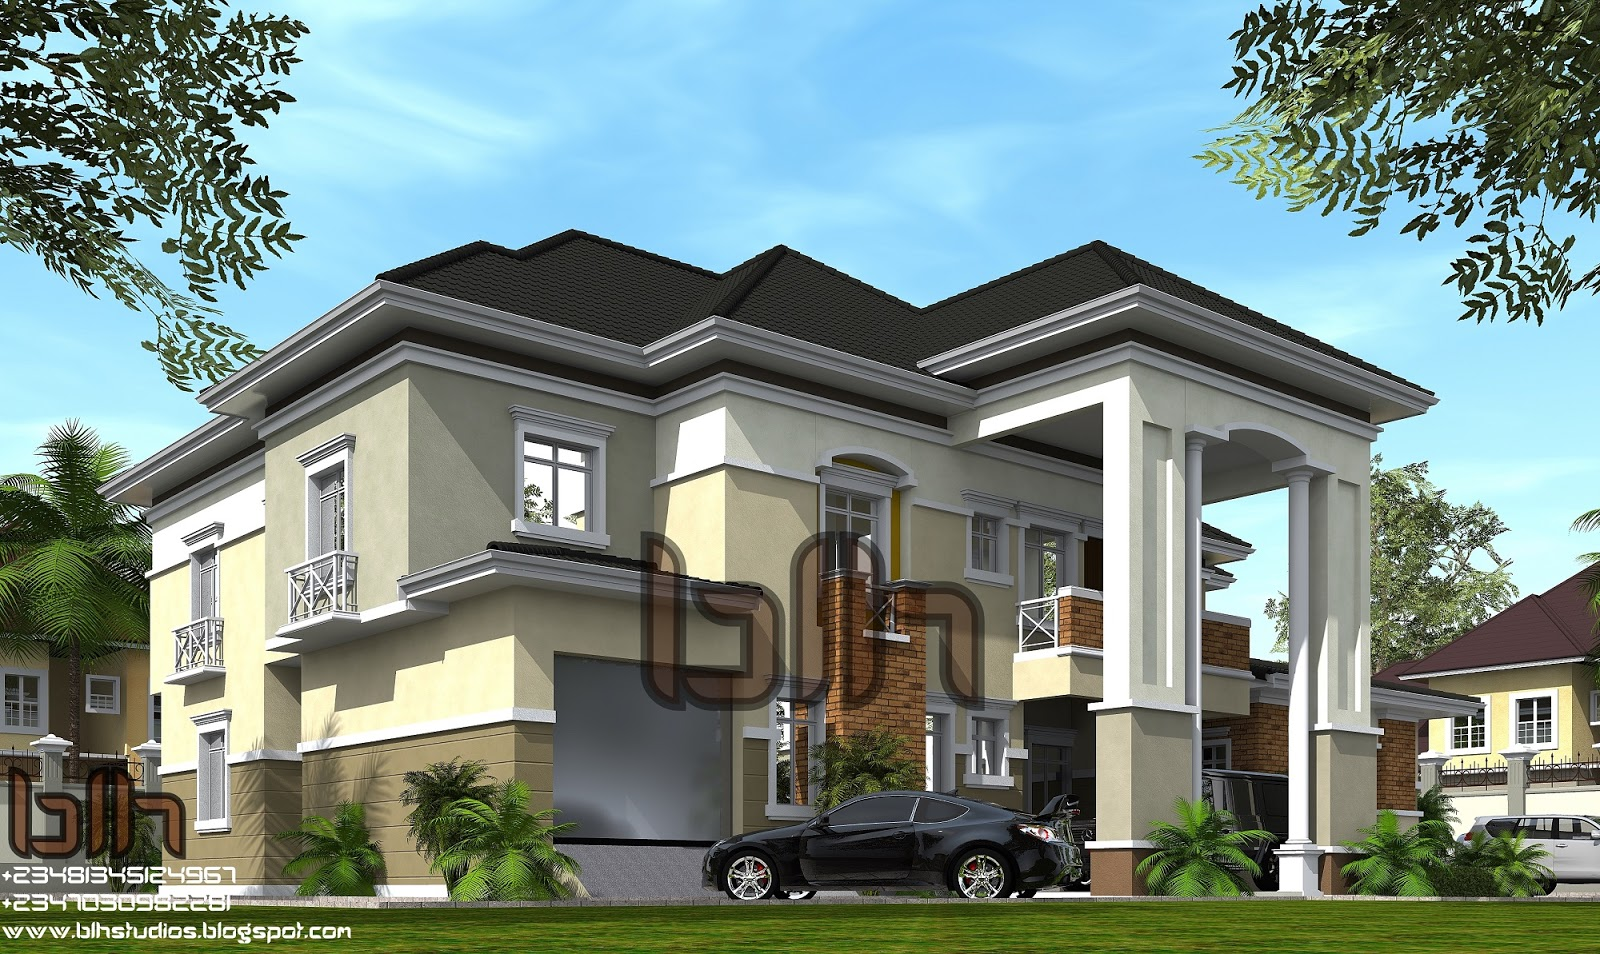 Architectural designs by blacklakehouse 6 bedroom duplex for 6 bedroom duplex